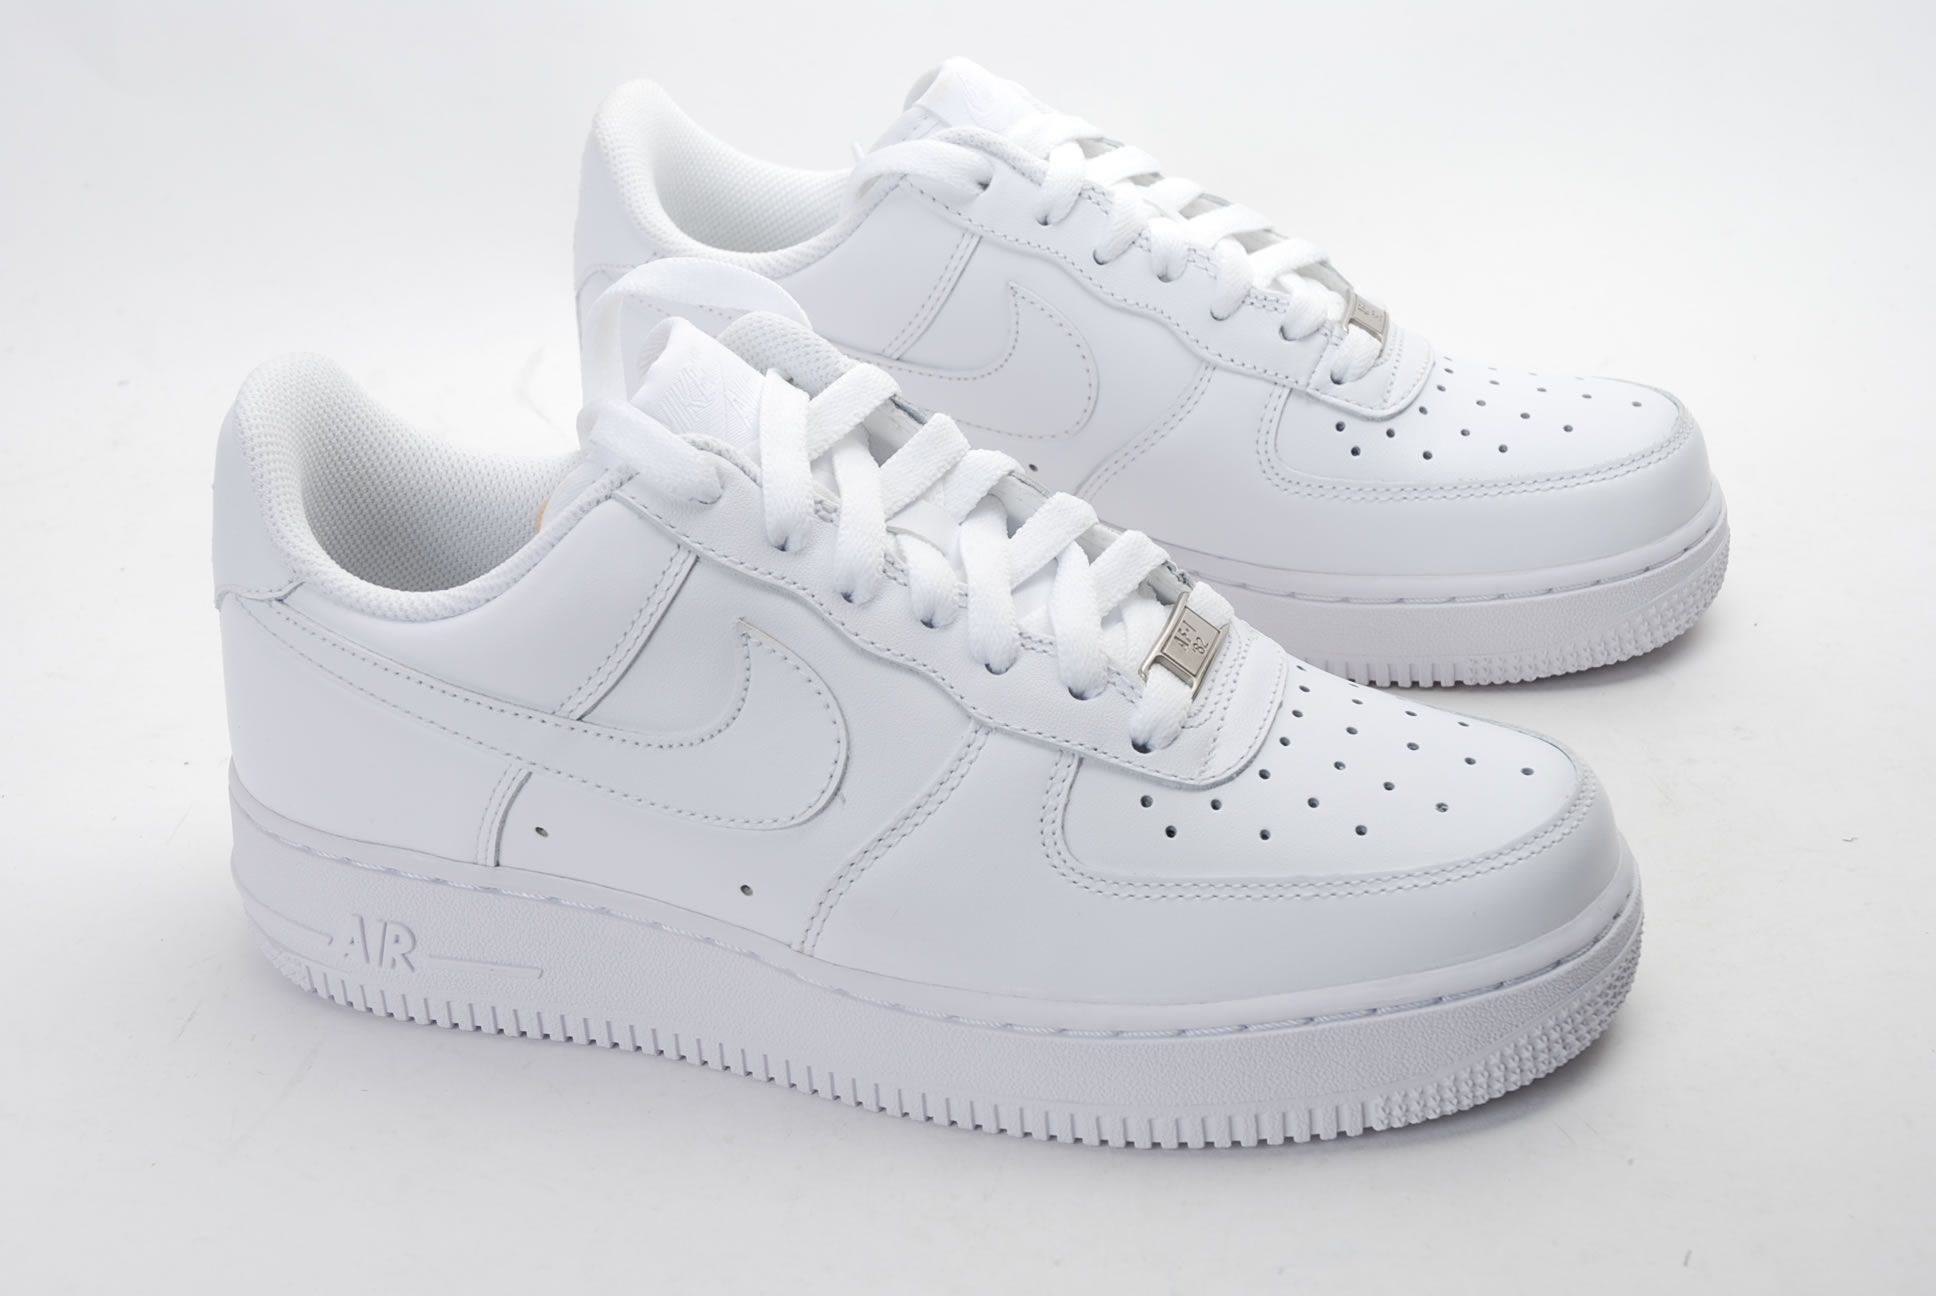 2adidas air force scarpe